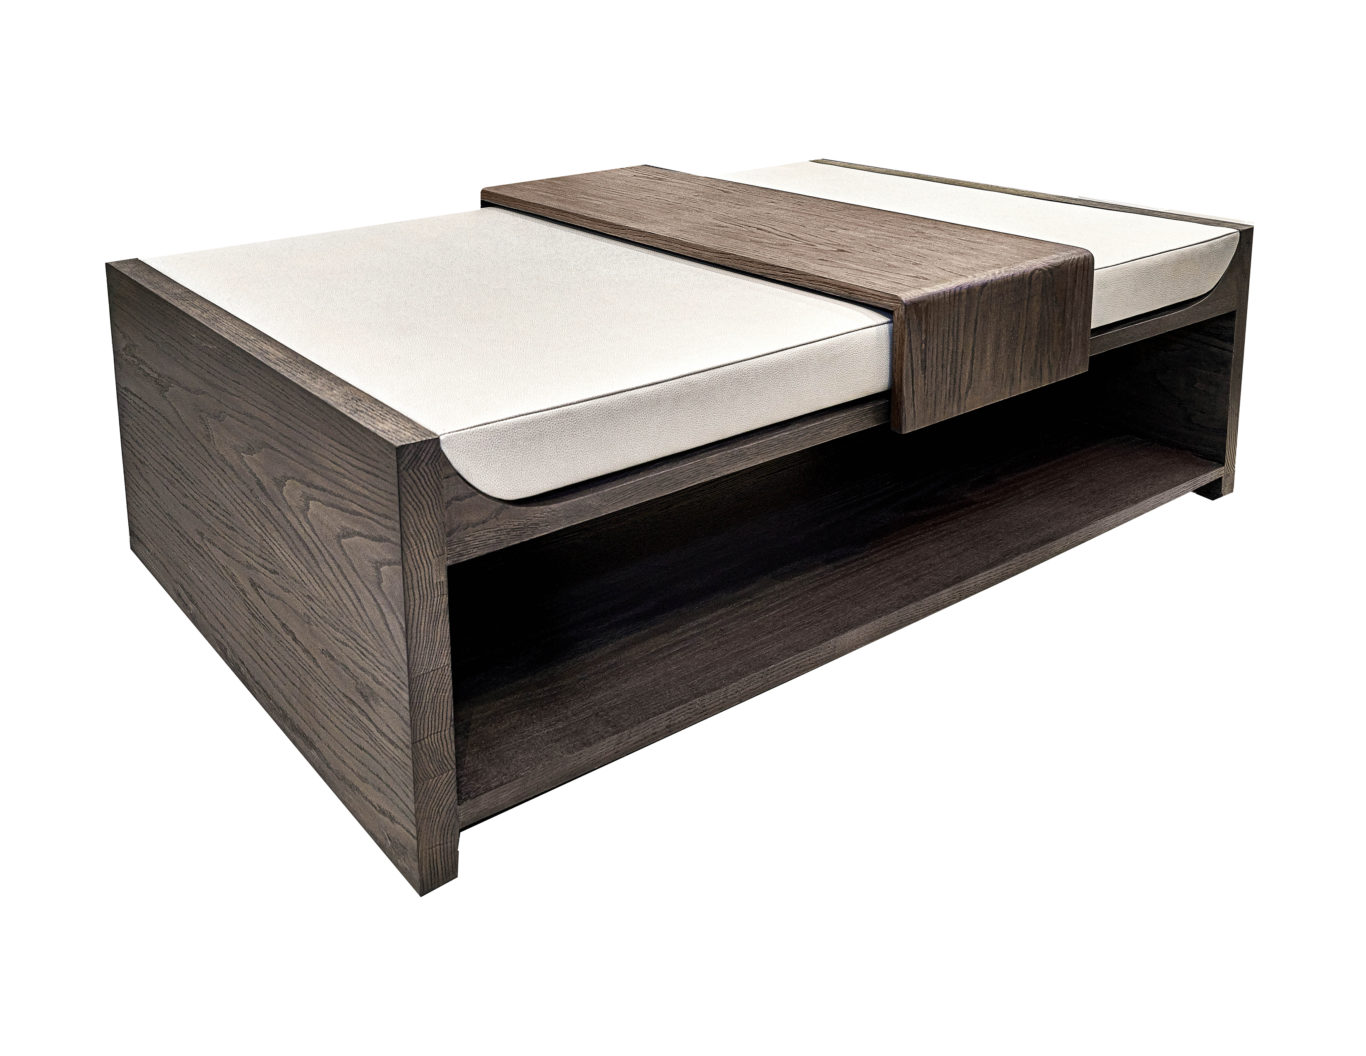 Benches & Ottomans Product: 767